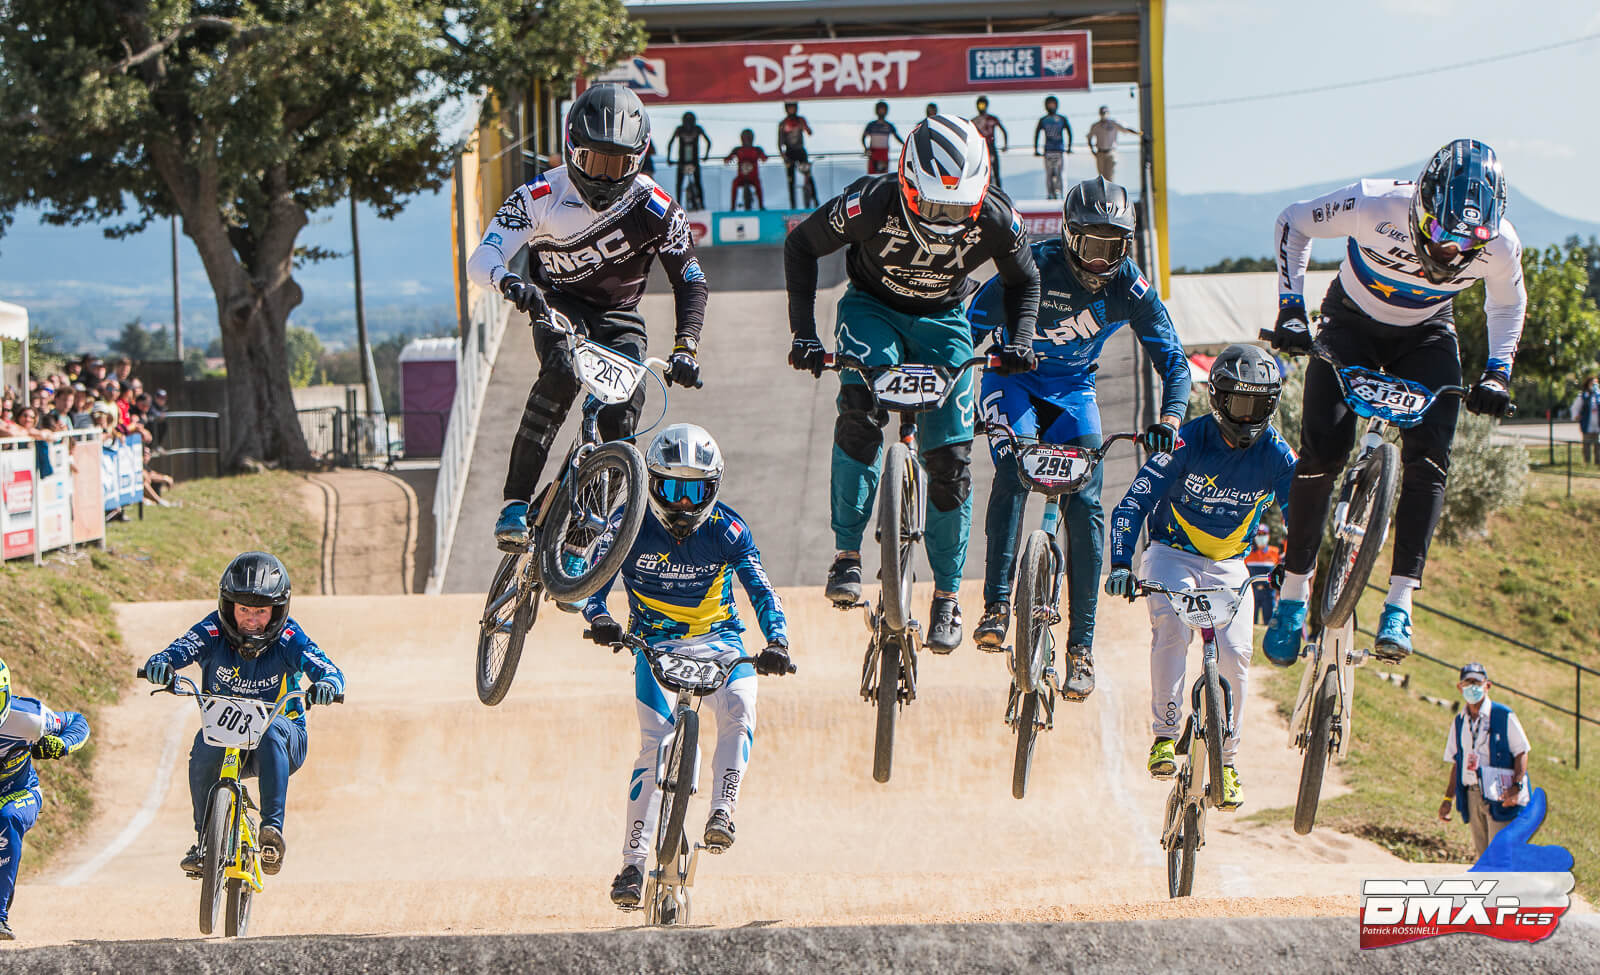 2021 French Cup Mours - BmxPics.fr - 002